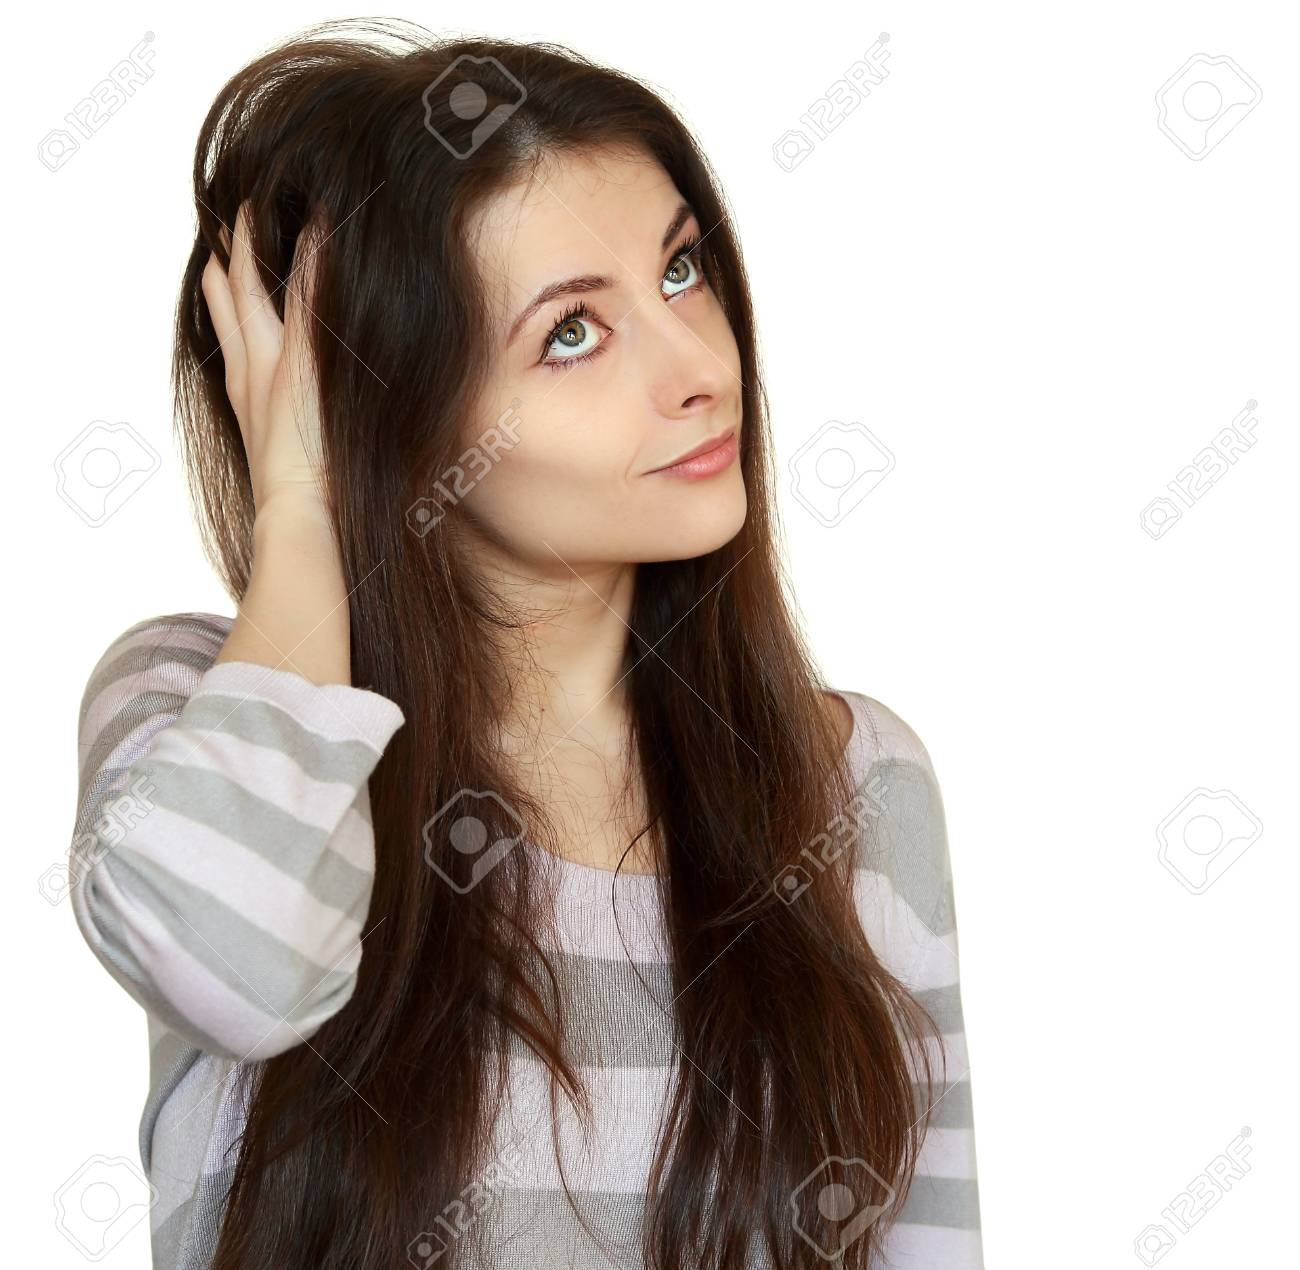 Thinking woman holding hair and looking up  Closeup portrait isolated on white background Stock Photo - 18443592